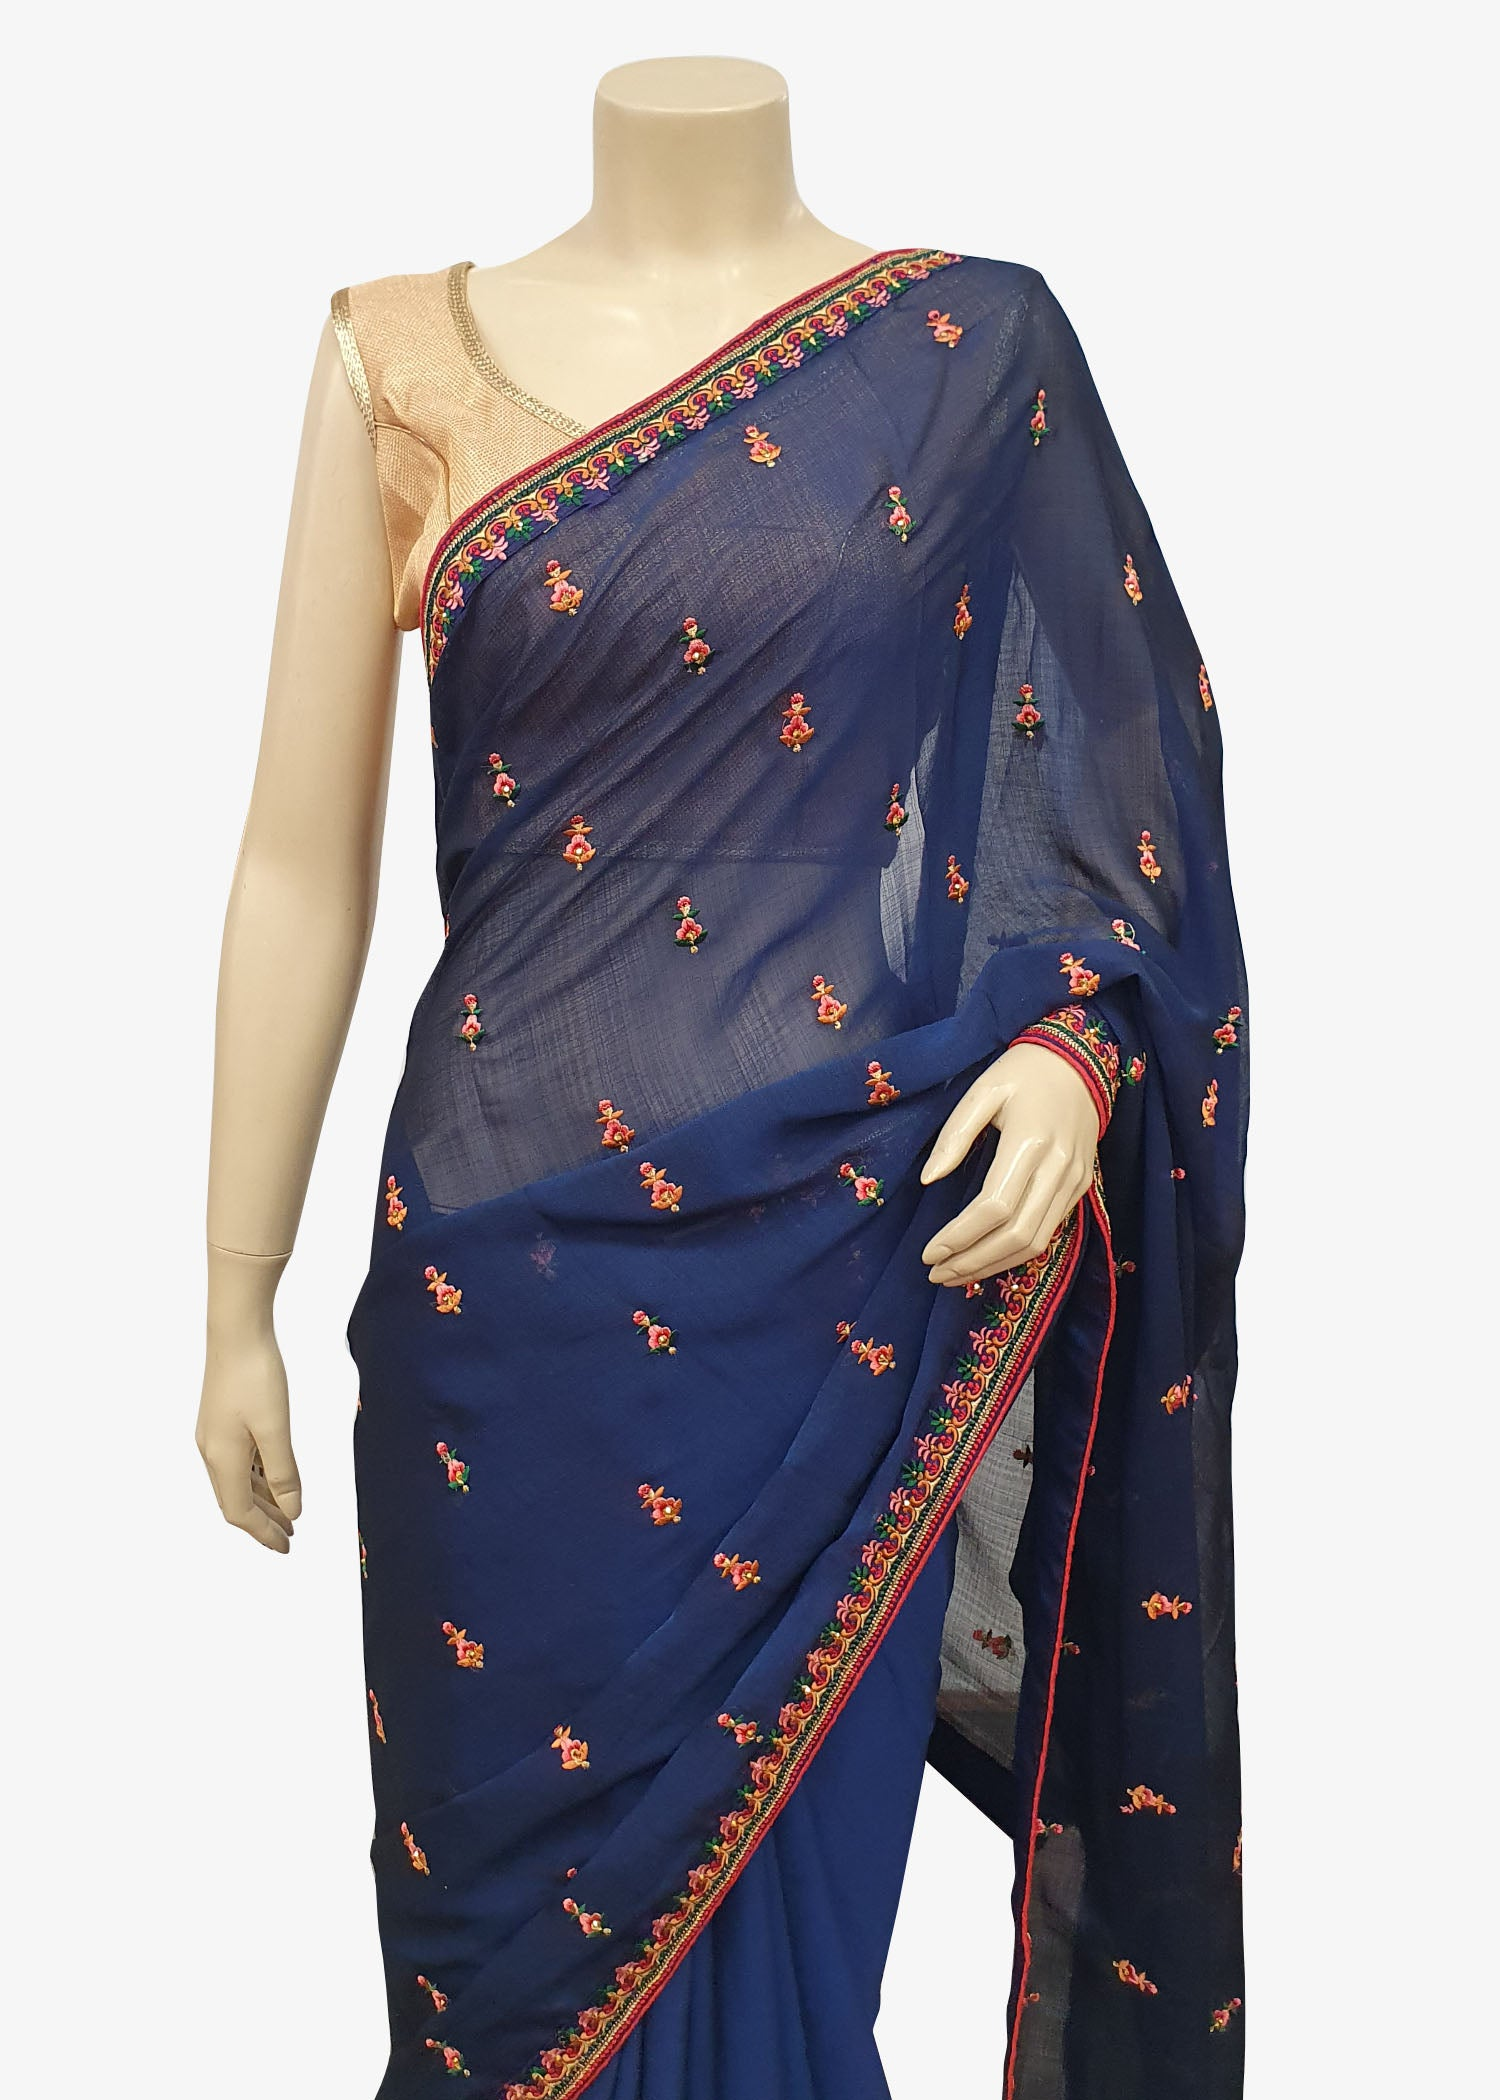 Navy Blue Georgette Saree With Resham Thread Work Border